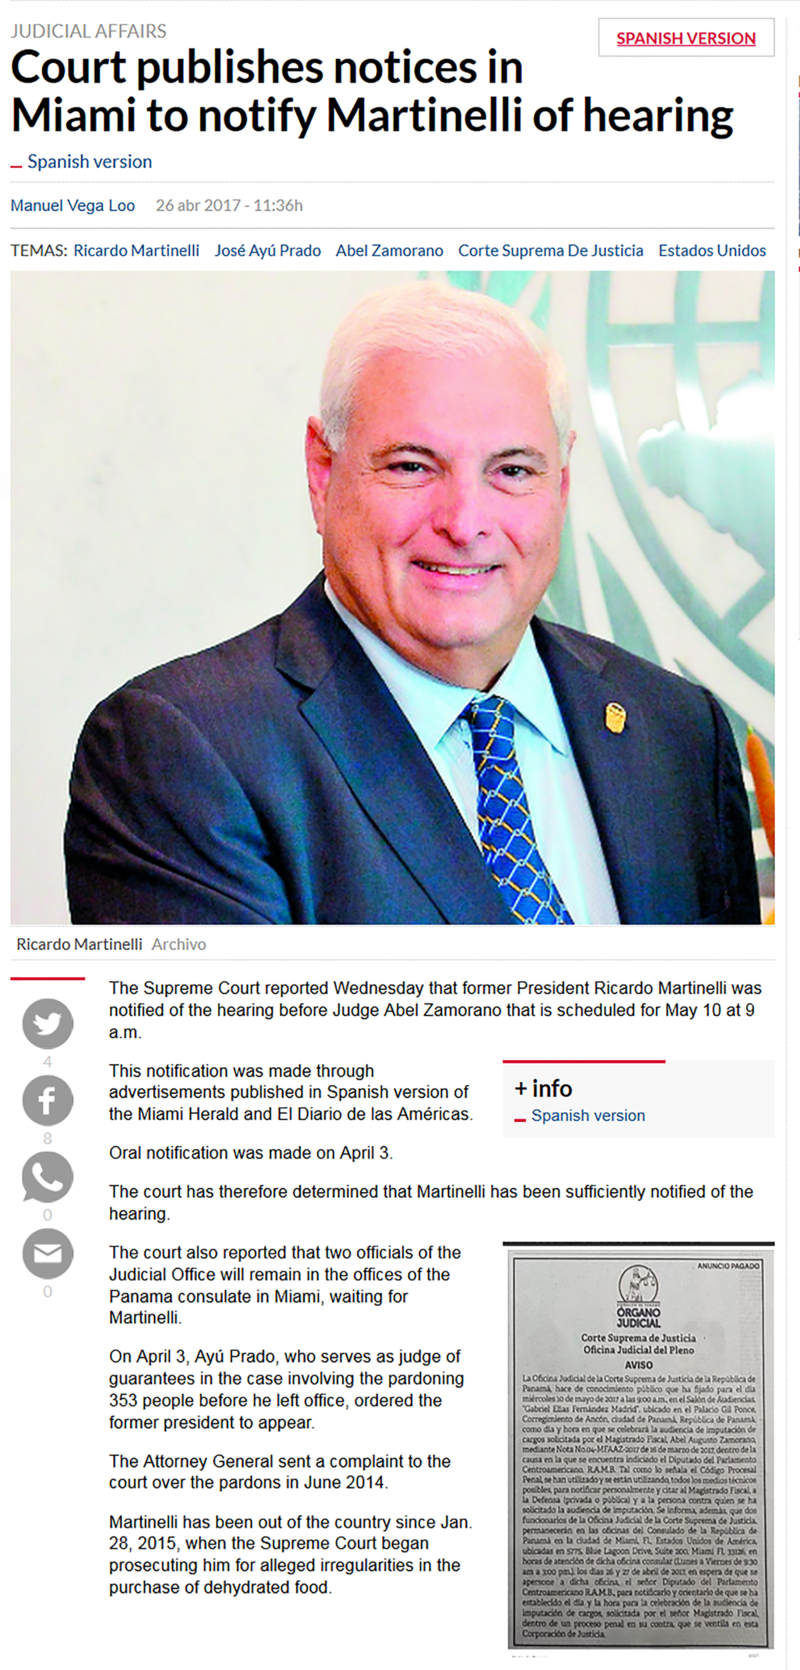 Court Publishes Notices in Miami of Martinelli Hearing.png